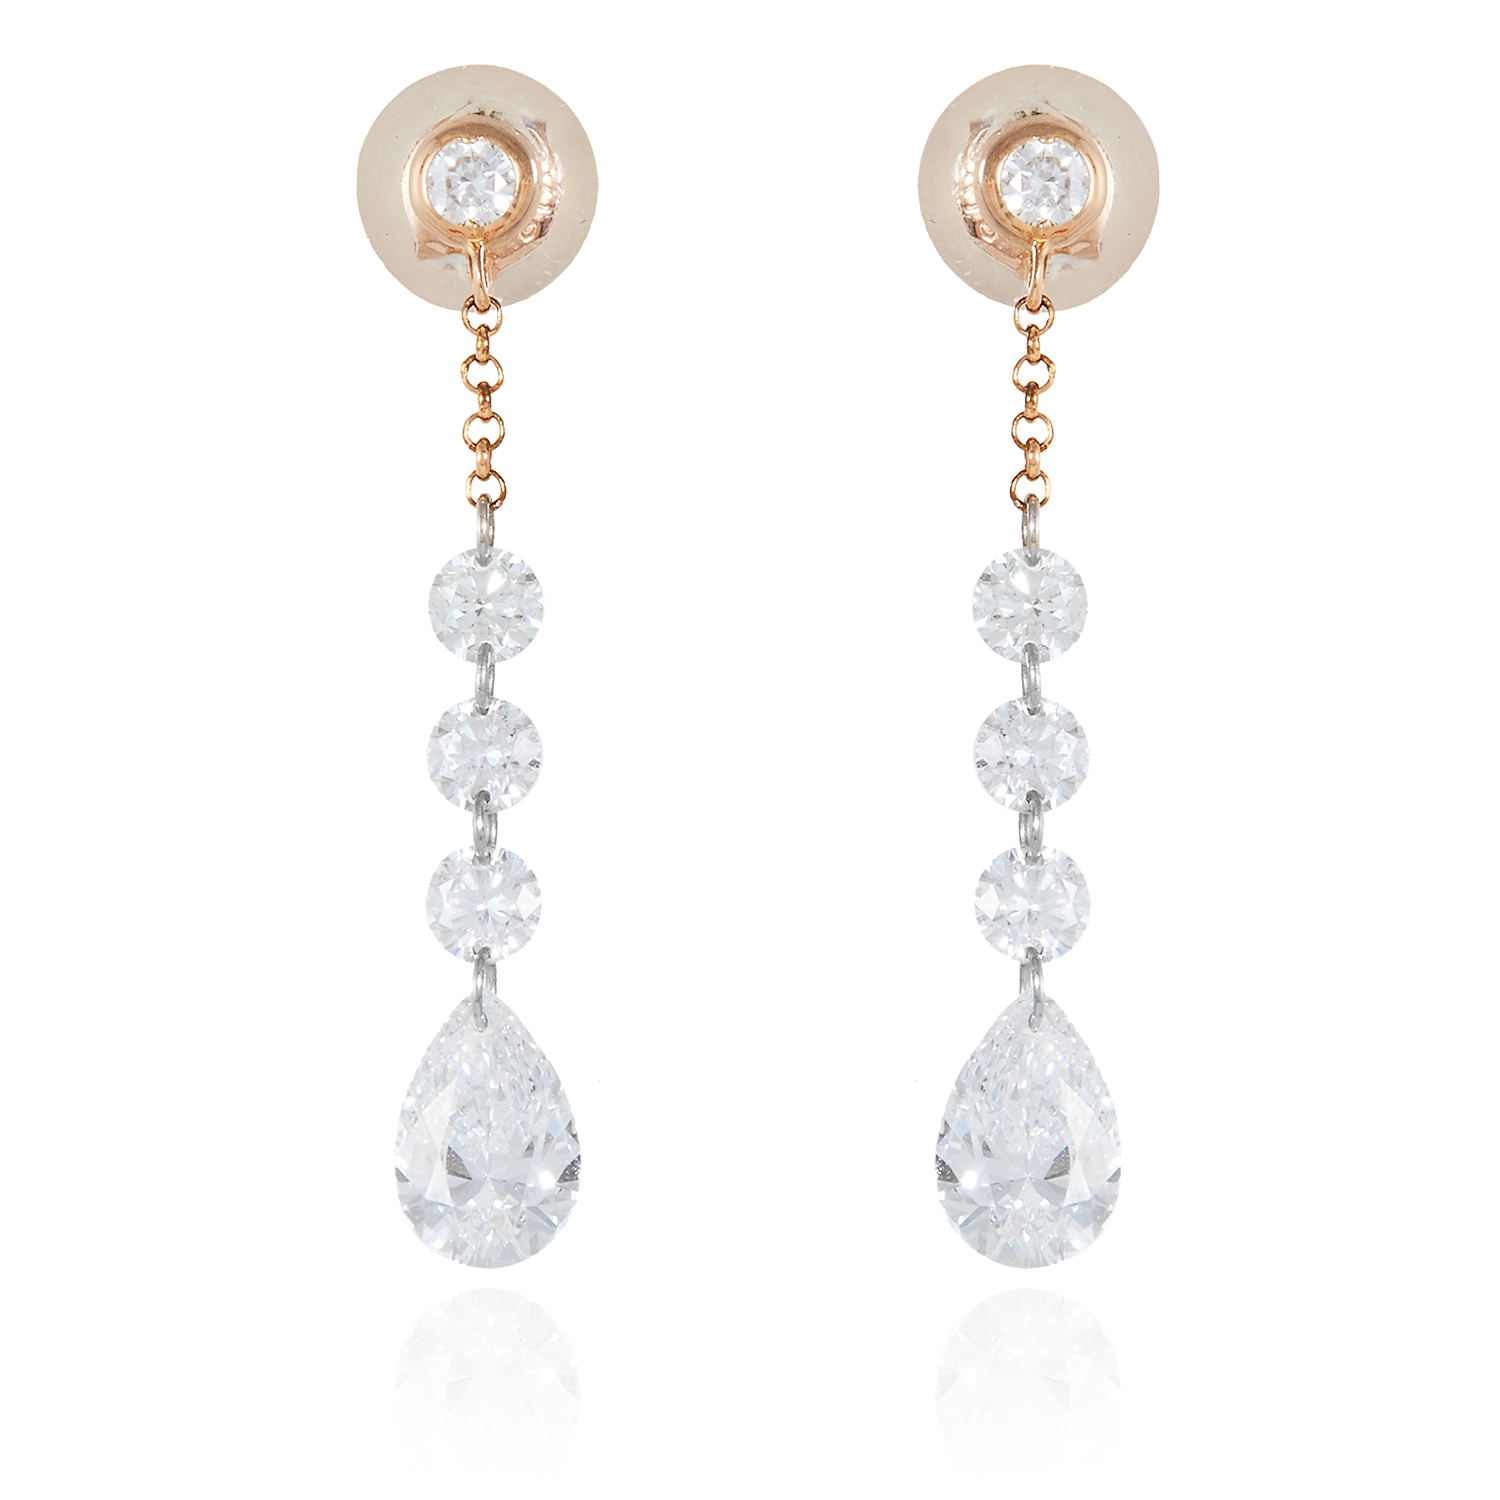 Los 15 - A PAIR OF 1.55 CARAT DIAMOND DROP EARRINGS, HIRSH in 18ct gold, each comprising of four round cut